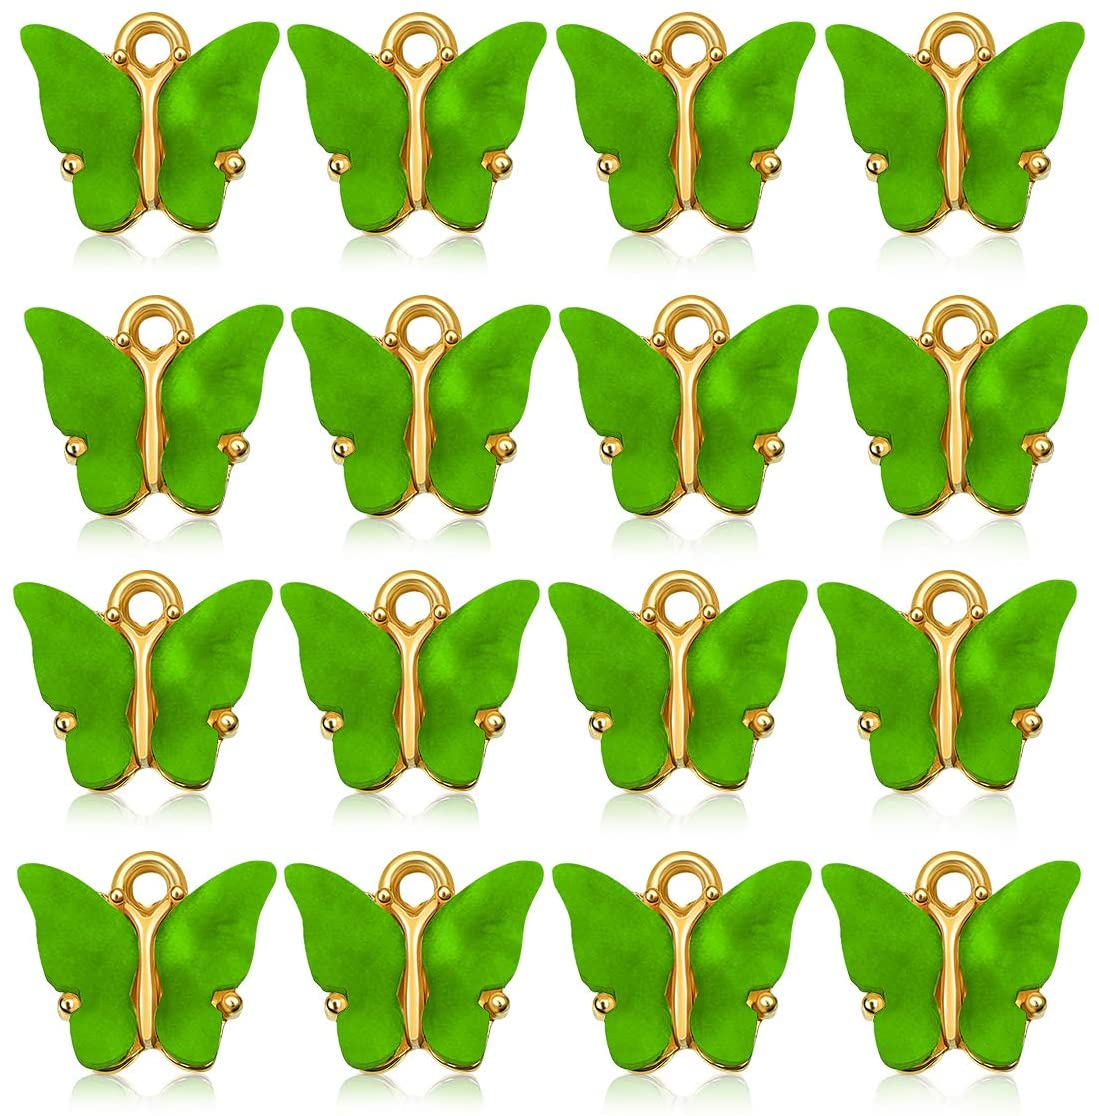 16 Pcs Butterfly Charms Acrylic Butterfly Pendant for Necklace Bracelet Earrings DIY Jewelry Making (Green)